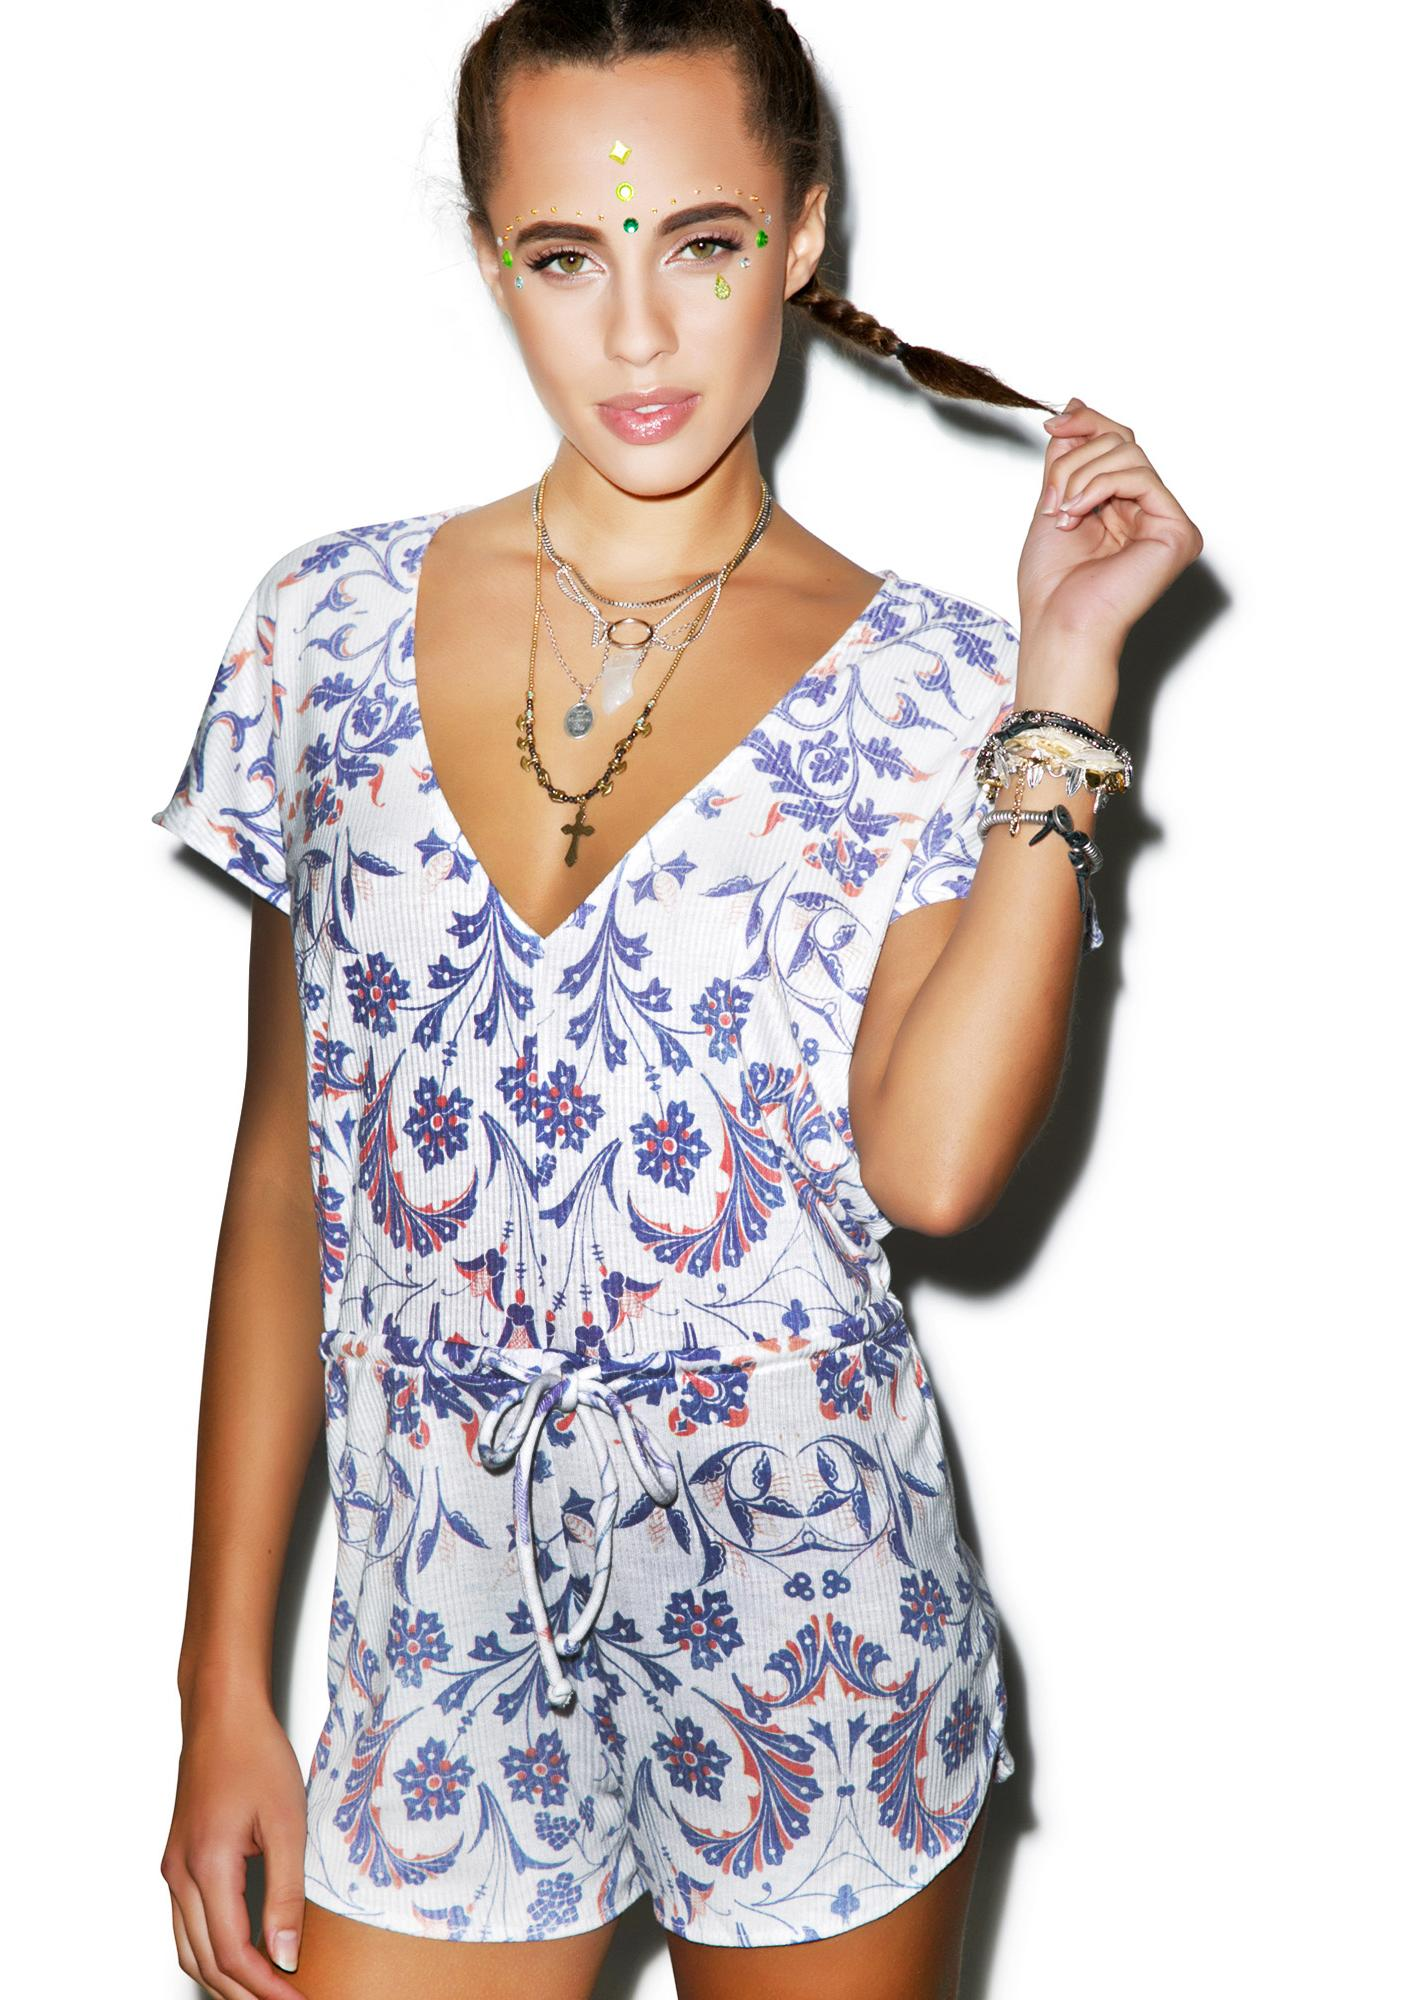 Wildfox Couture American Paisley Roadtrip Romper